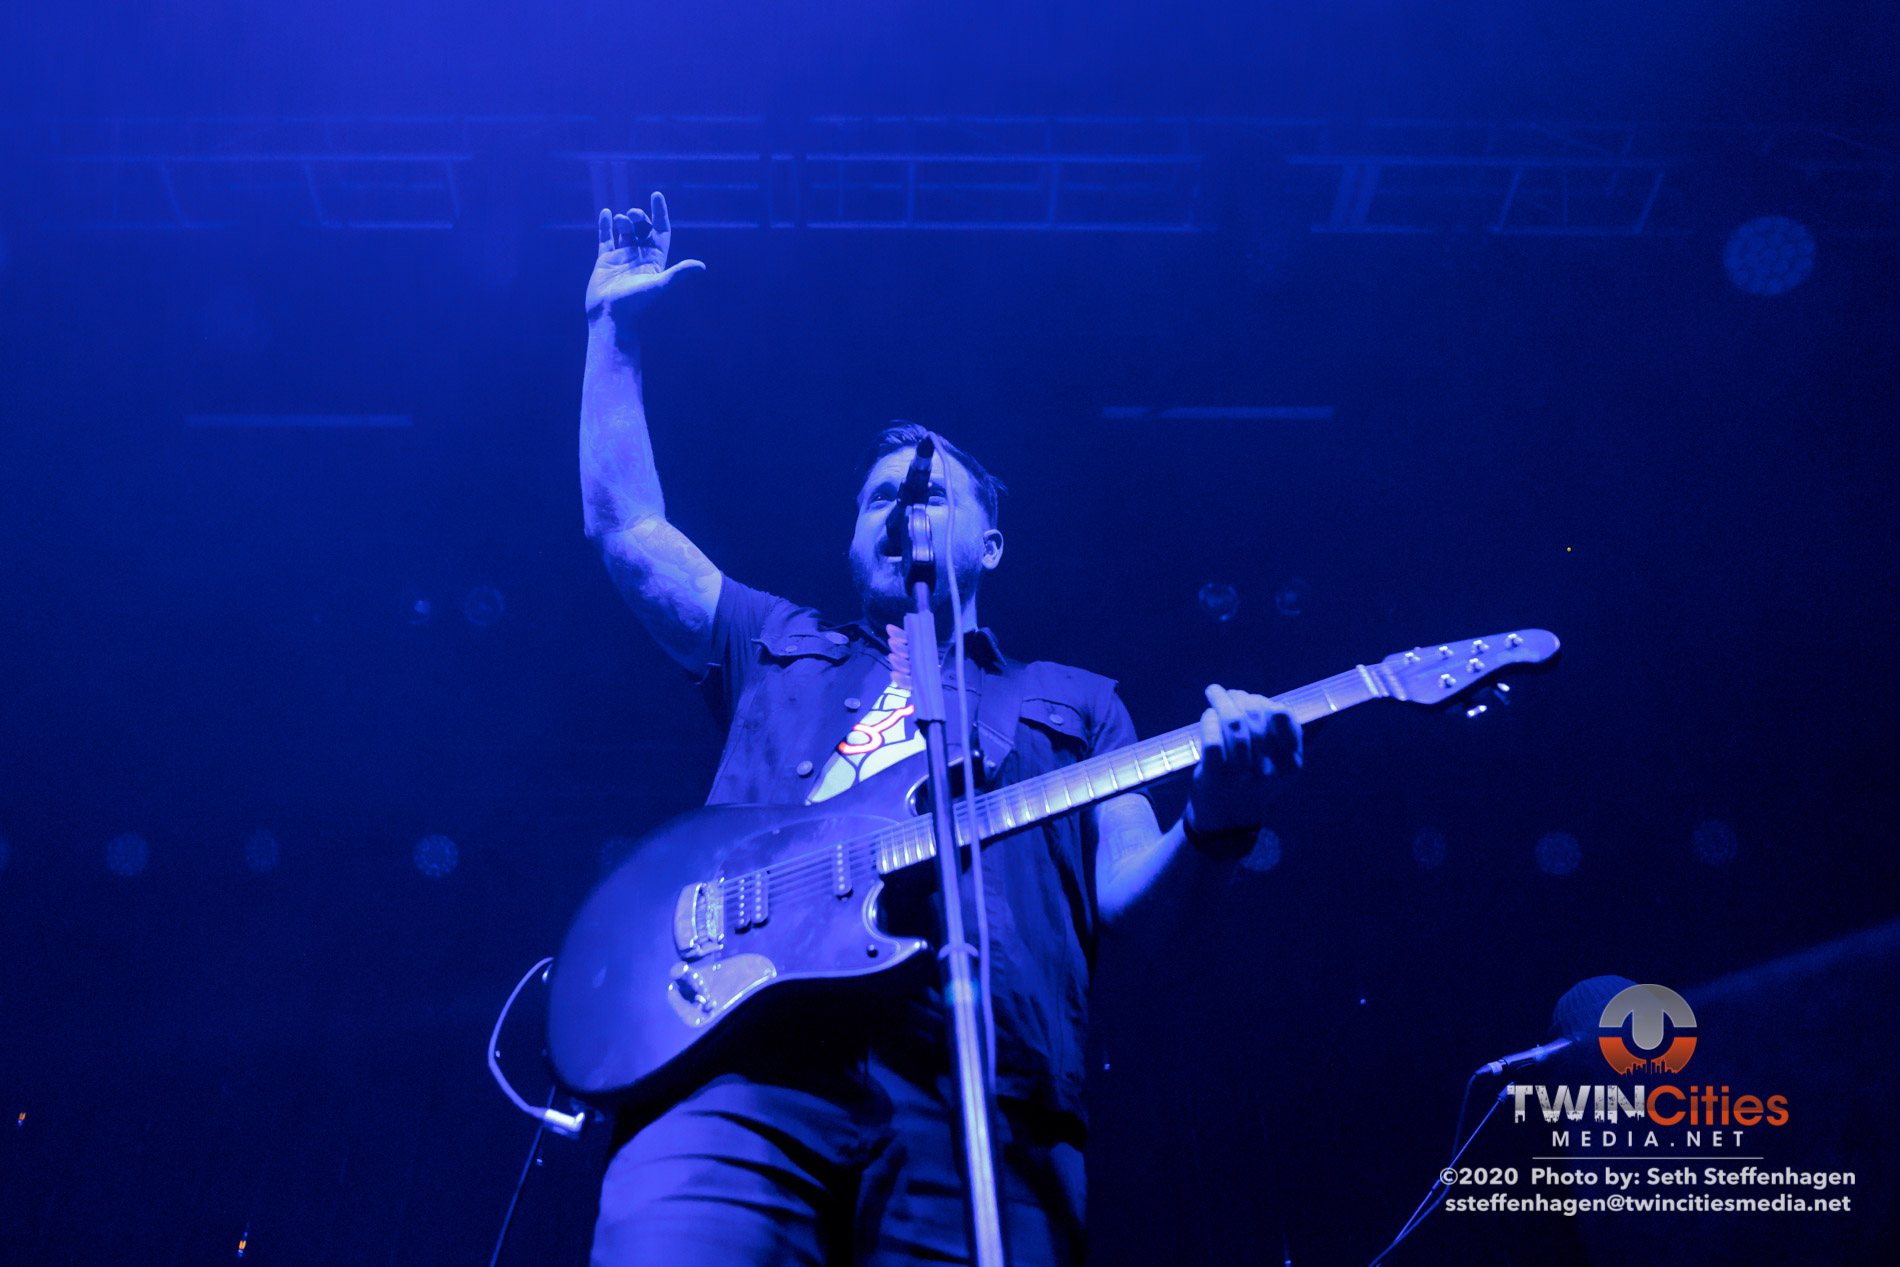 January 30, 2020 - Minneapolis, Minnesota, United States - Thrice live in concert at the First Avenue along with mewithoutYou, Drug Church and Holy Fawn as the openers.  (Photo by Seth Steffenhagen/Steffenhagen Photography)